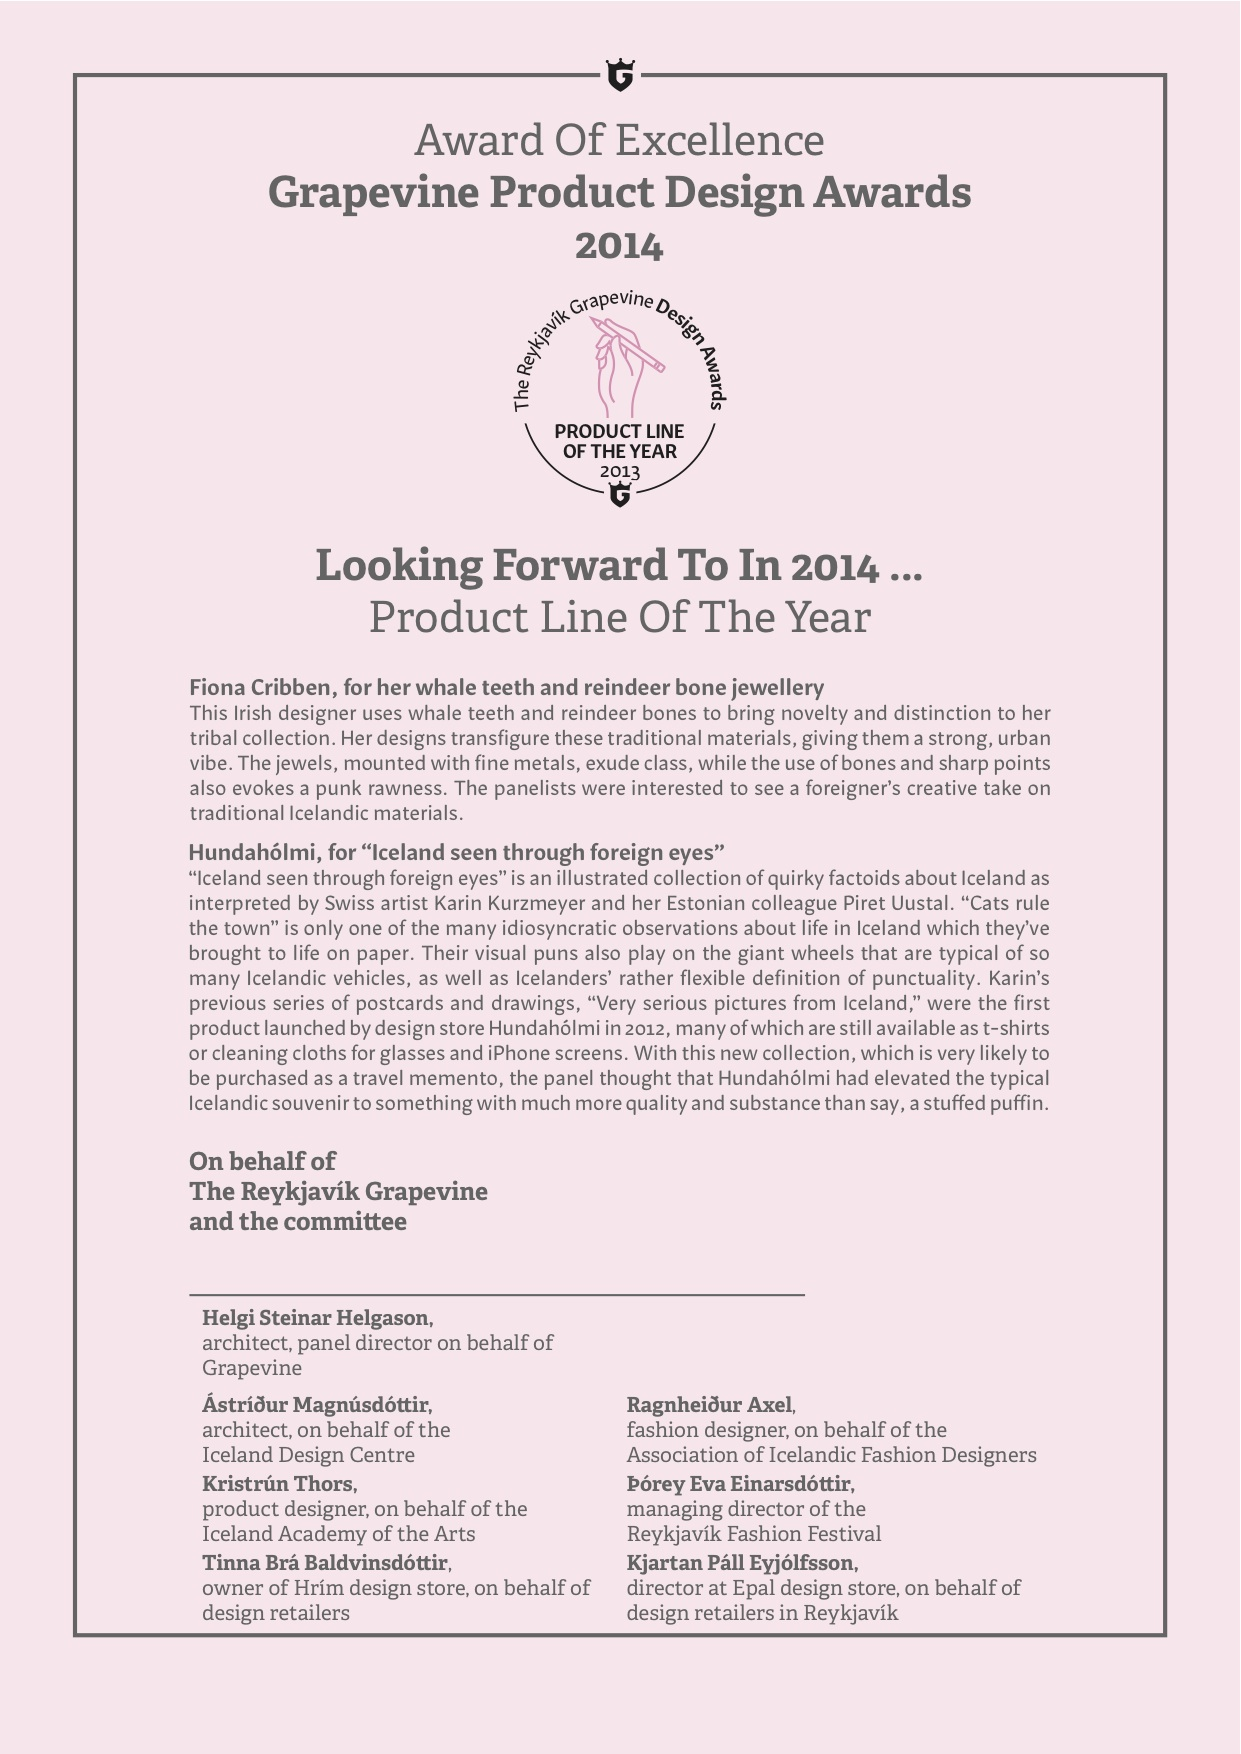 Looking Forward To In 2014 - Category Product Line Of The Year.jpg